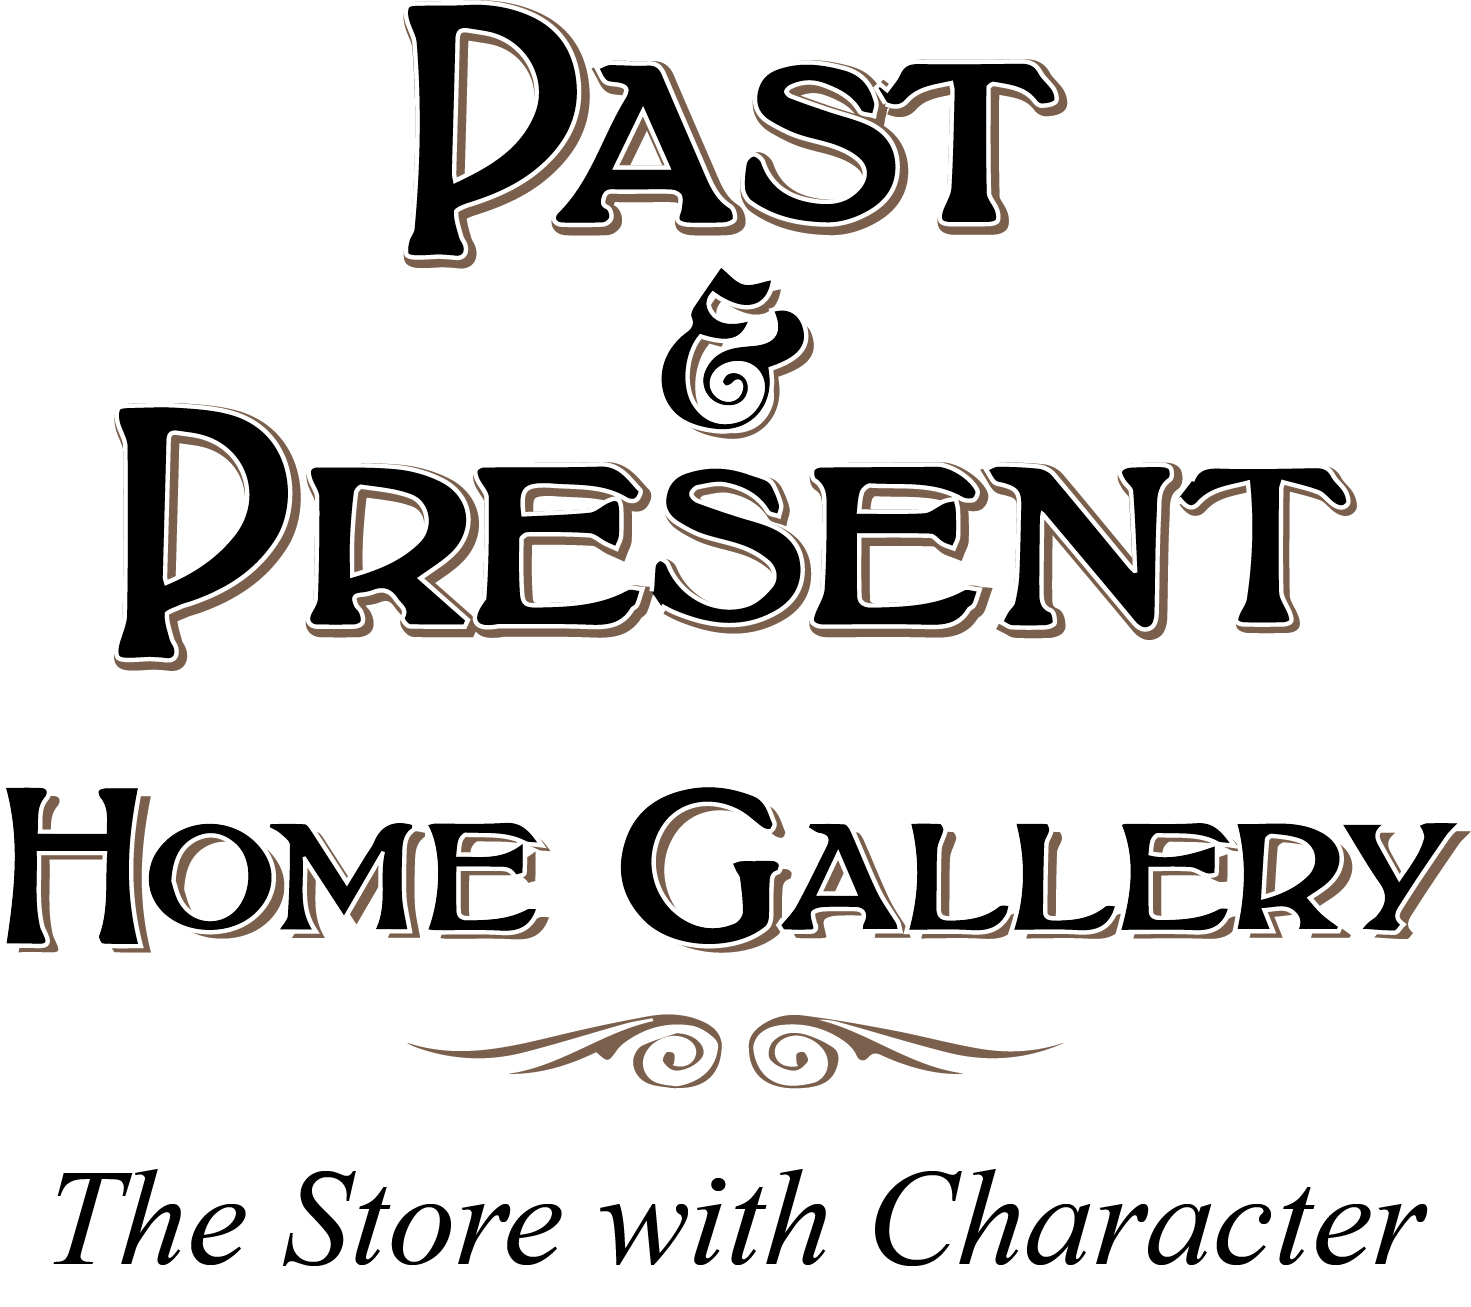 Past & Present Home Gallery Recognized With Customer Experience Award